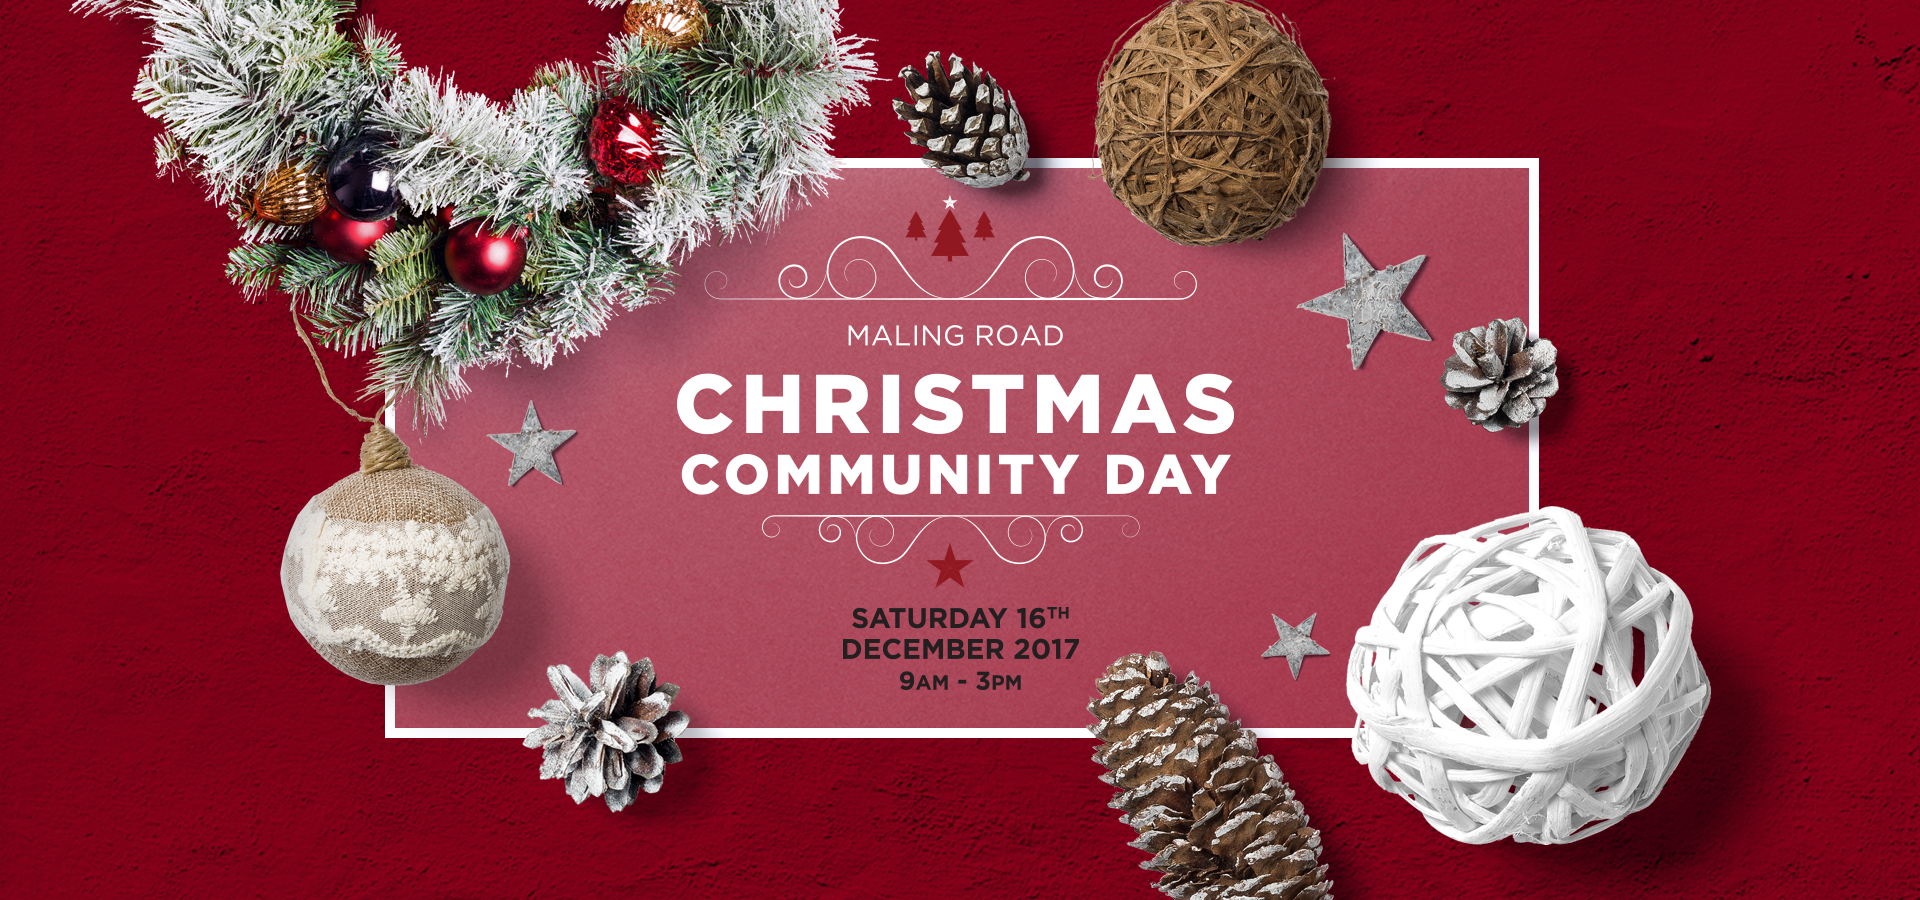 Maling-Road-Christmas Community Day-home-900